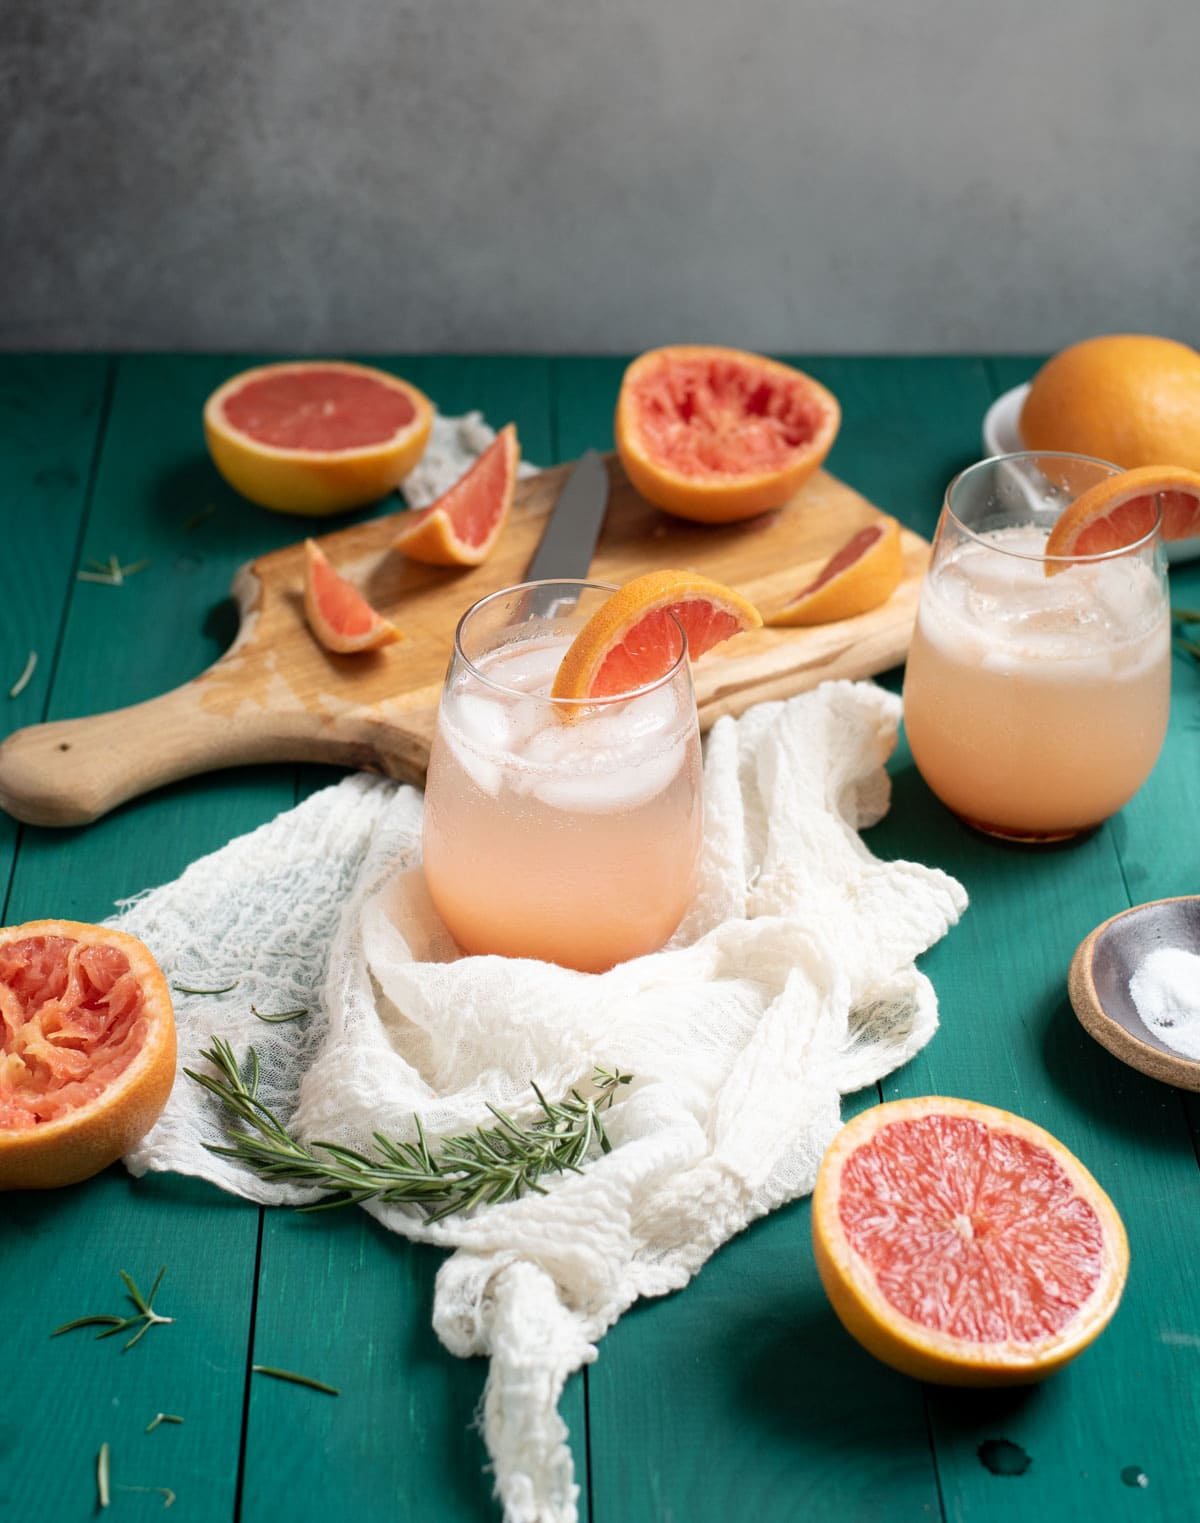 Two glasses of Rosemary grapefruit mocktail